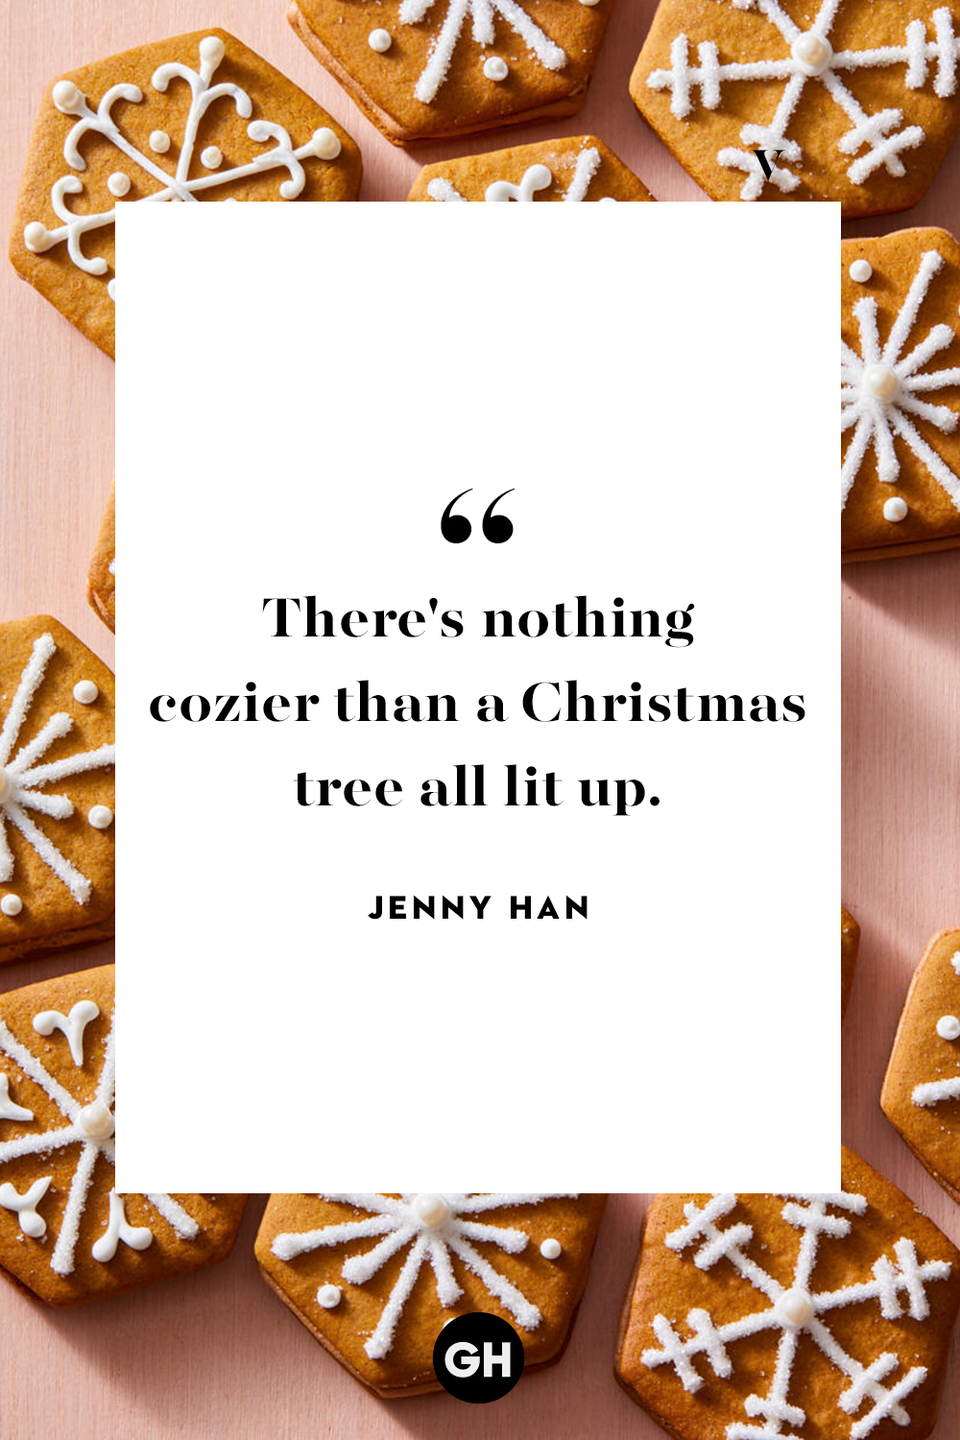 <p>There's nothing cozier than a Christmas tree all lit up.</p>